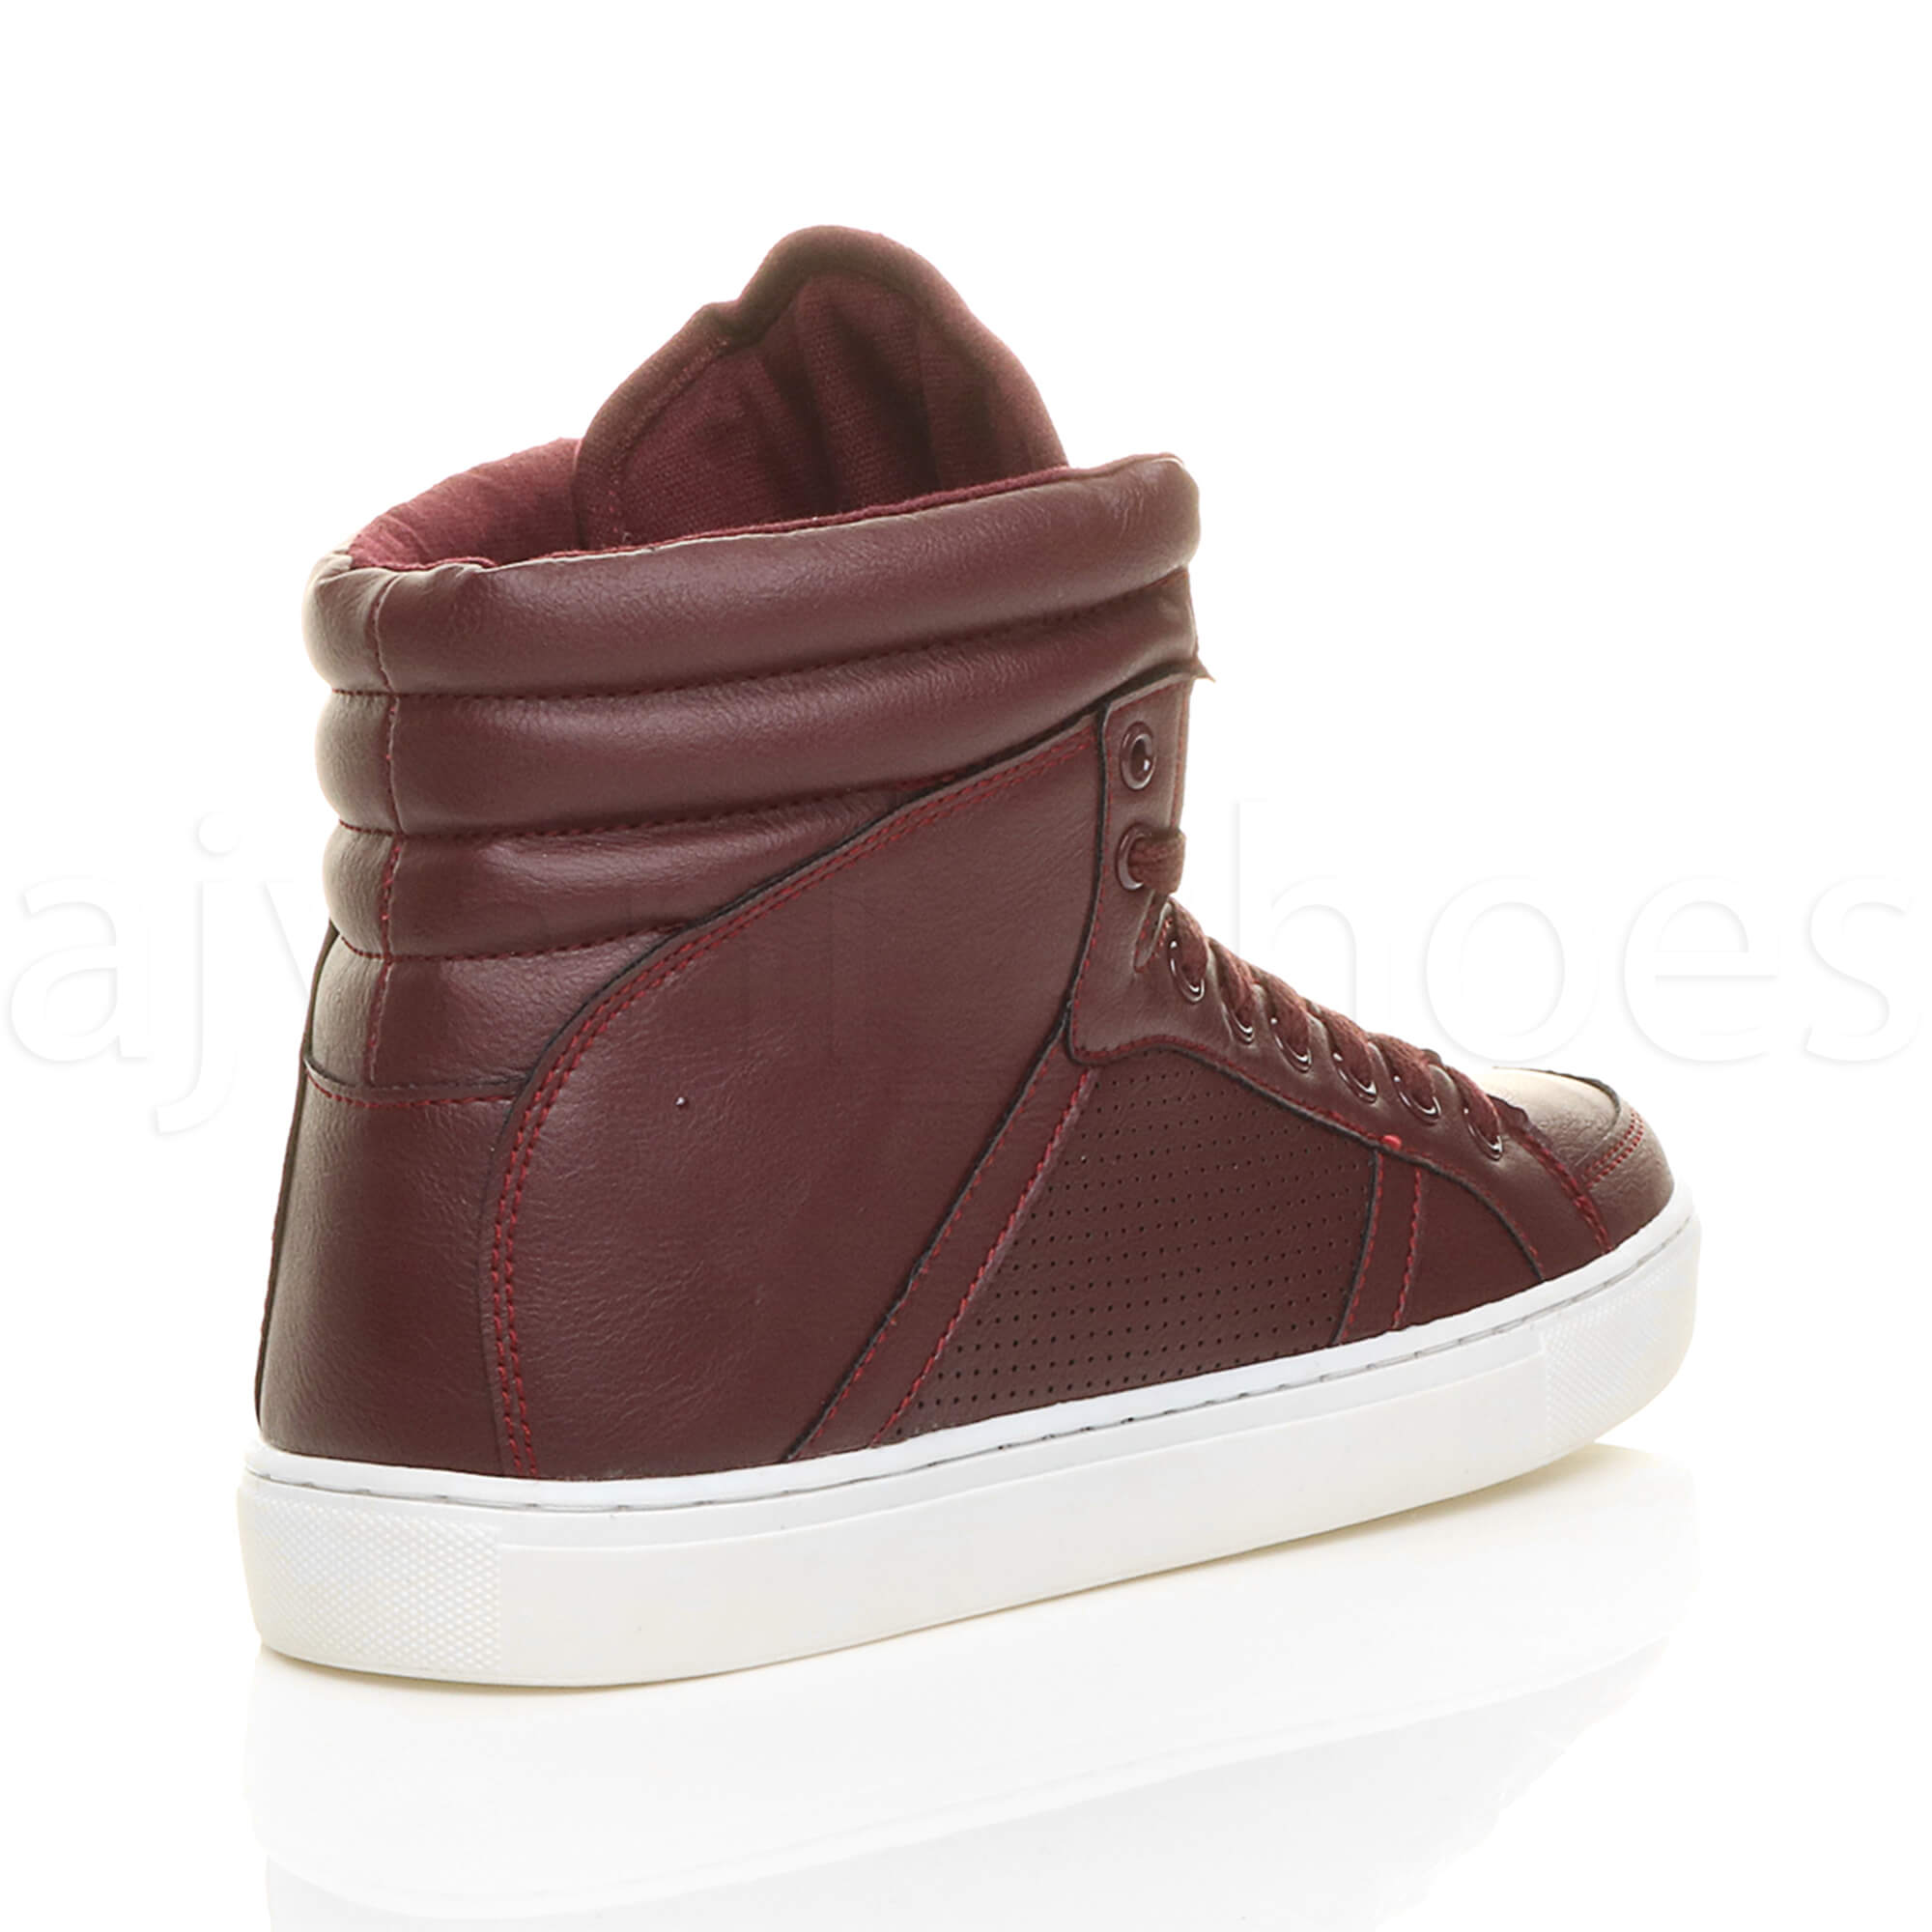 MENS-LACE-UP-CASUAL-FLAT-HI-HIGH-TOP-ANKLE-BOOTS-SHOES-TRAINERS-SNEAKERS-SIZE